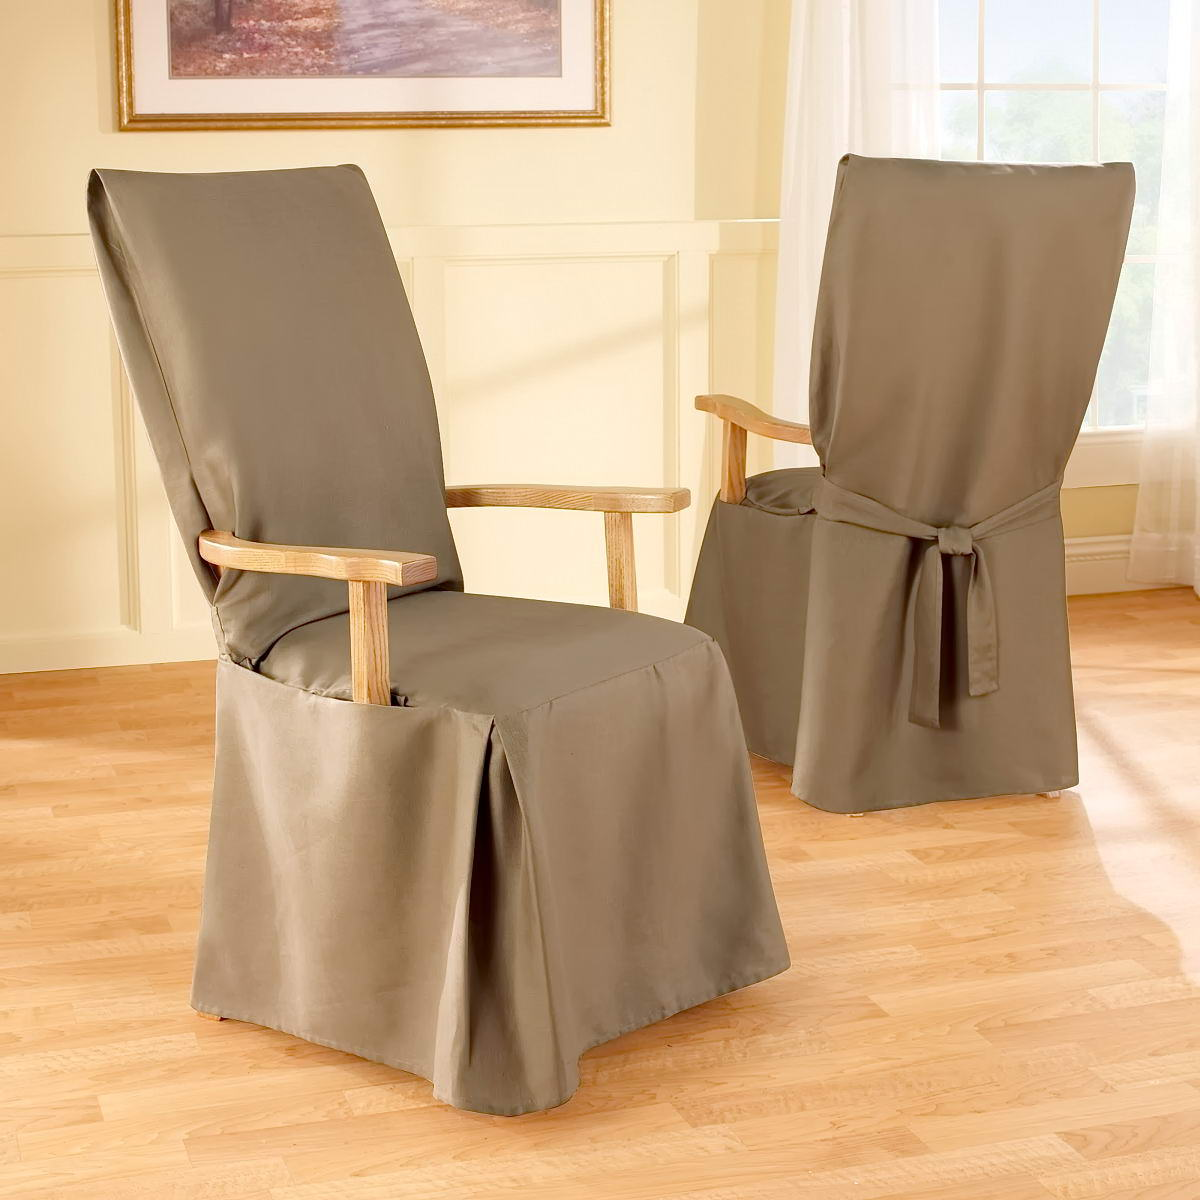 Slipcovers For Dining Room Chairs With Arms: Slipcovers For Dining Room Chairs With Arms